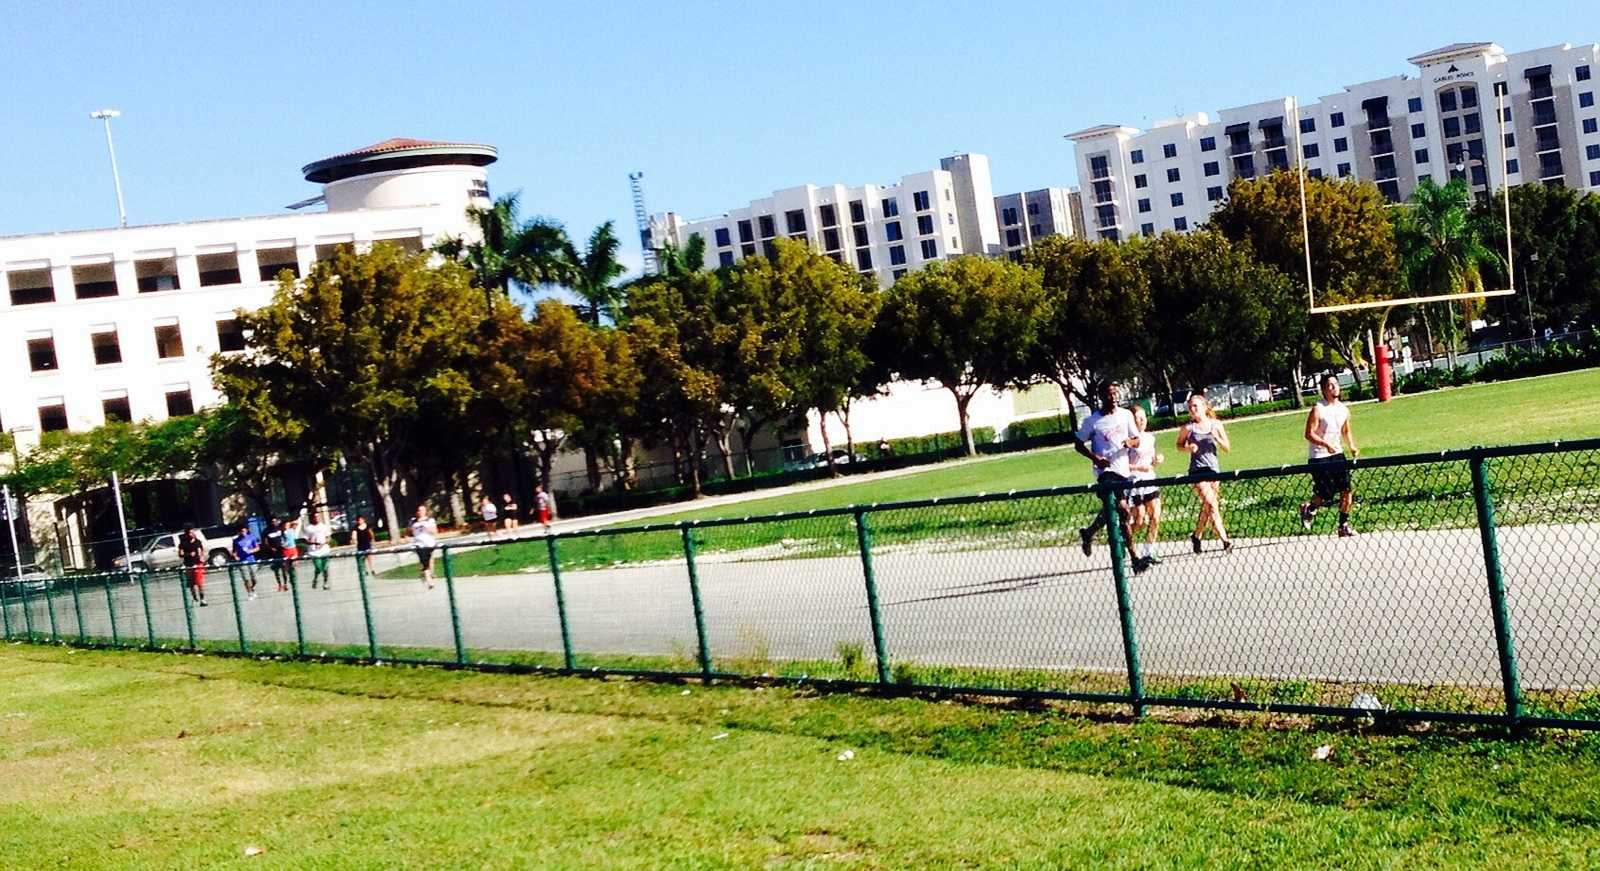 The Coral Gables track team practicing hard and preparing for a great season.